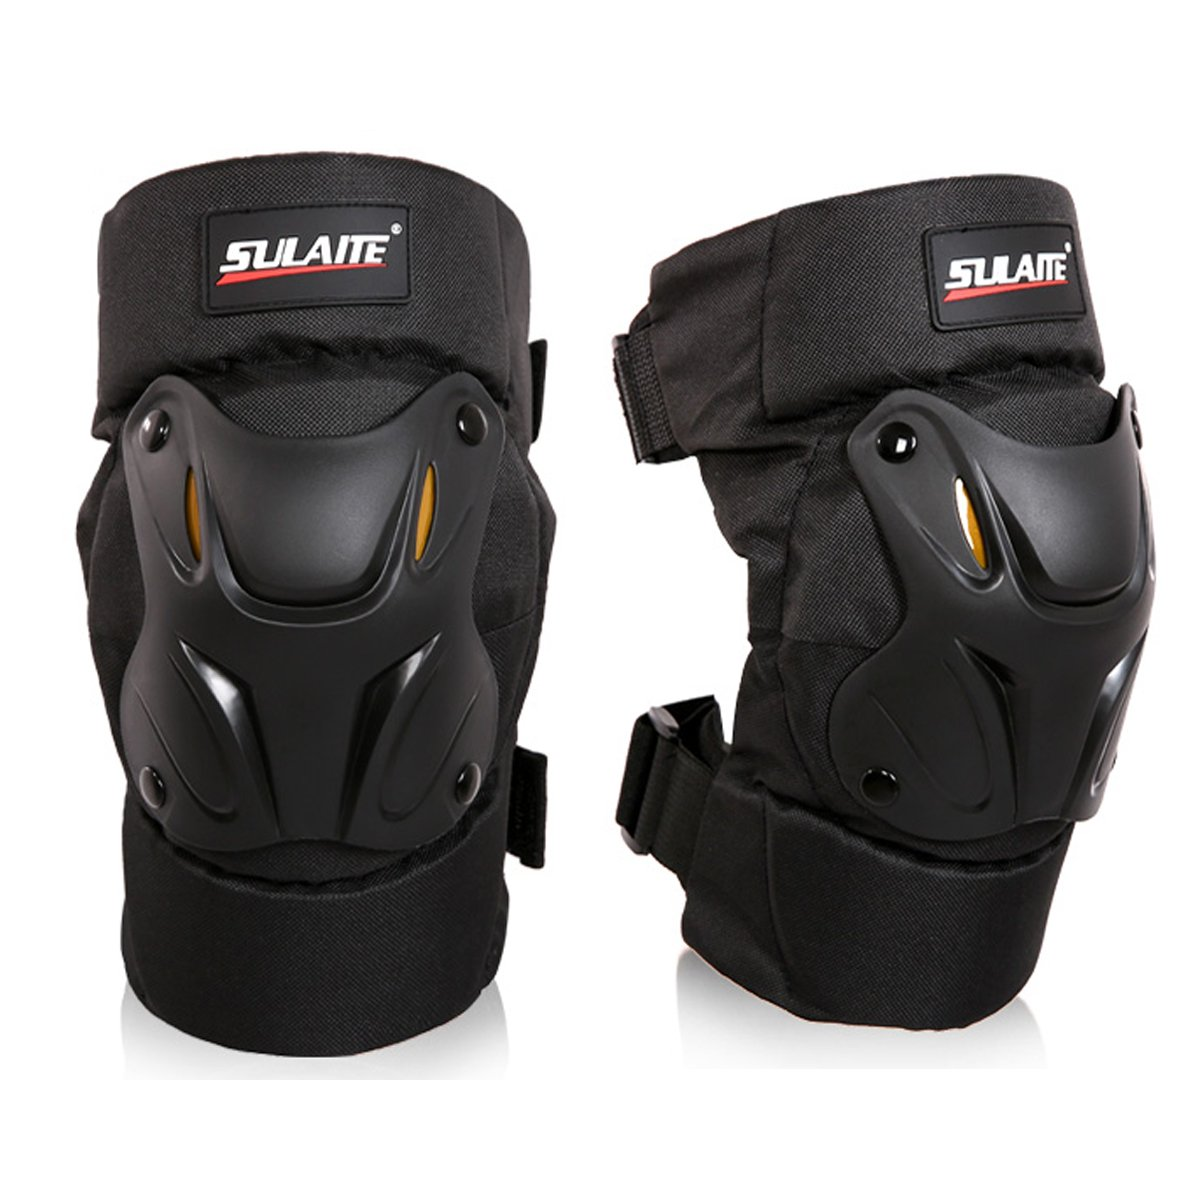 GuTe Knee Pads Guard Gear Protective for Motorcycle Mountain Biking Bicycle -1 Pair by GLEIM (Image #1)